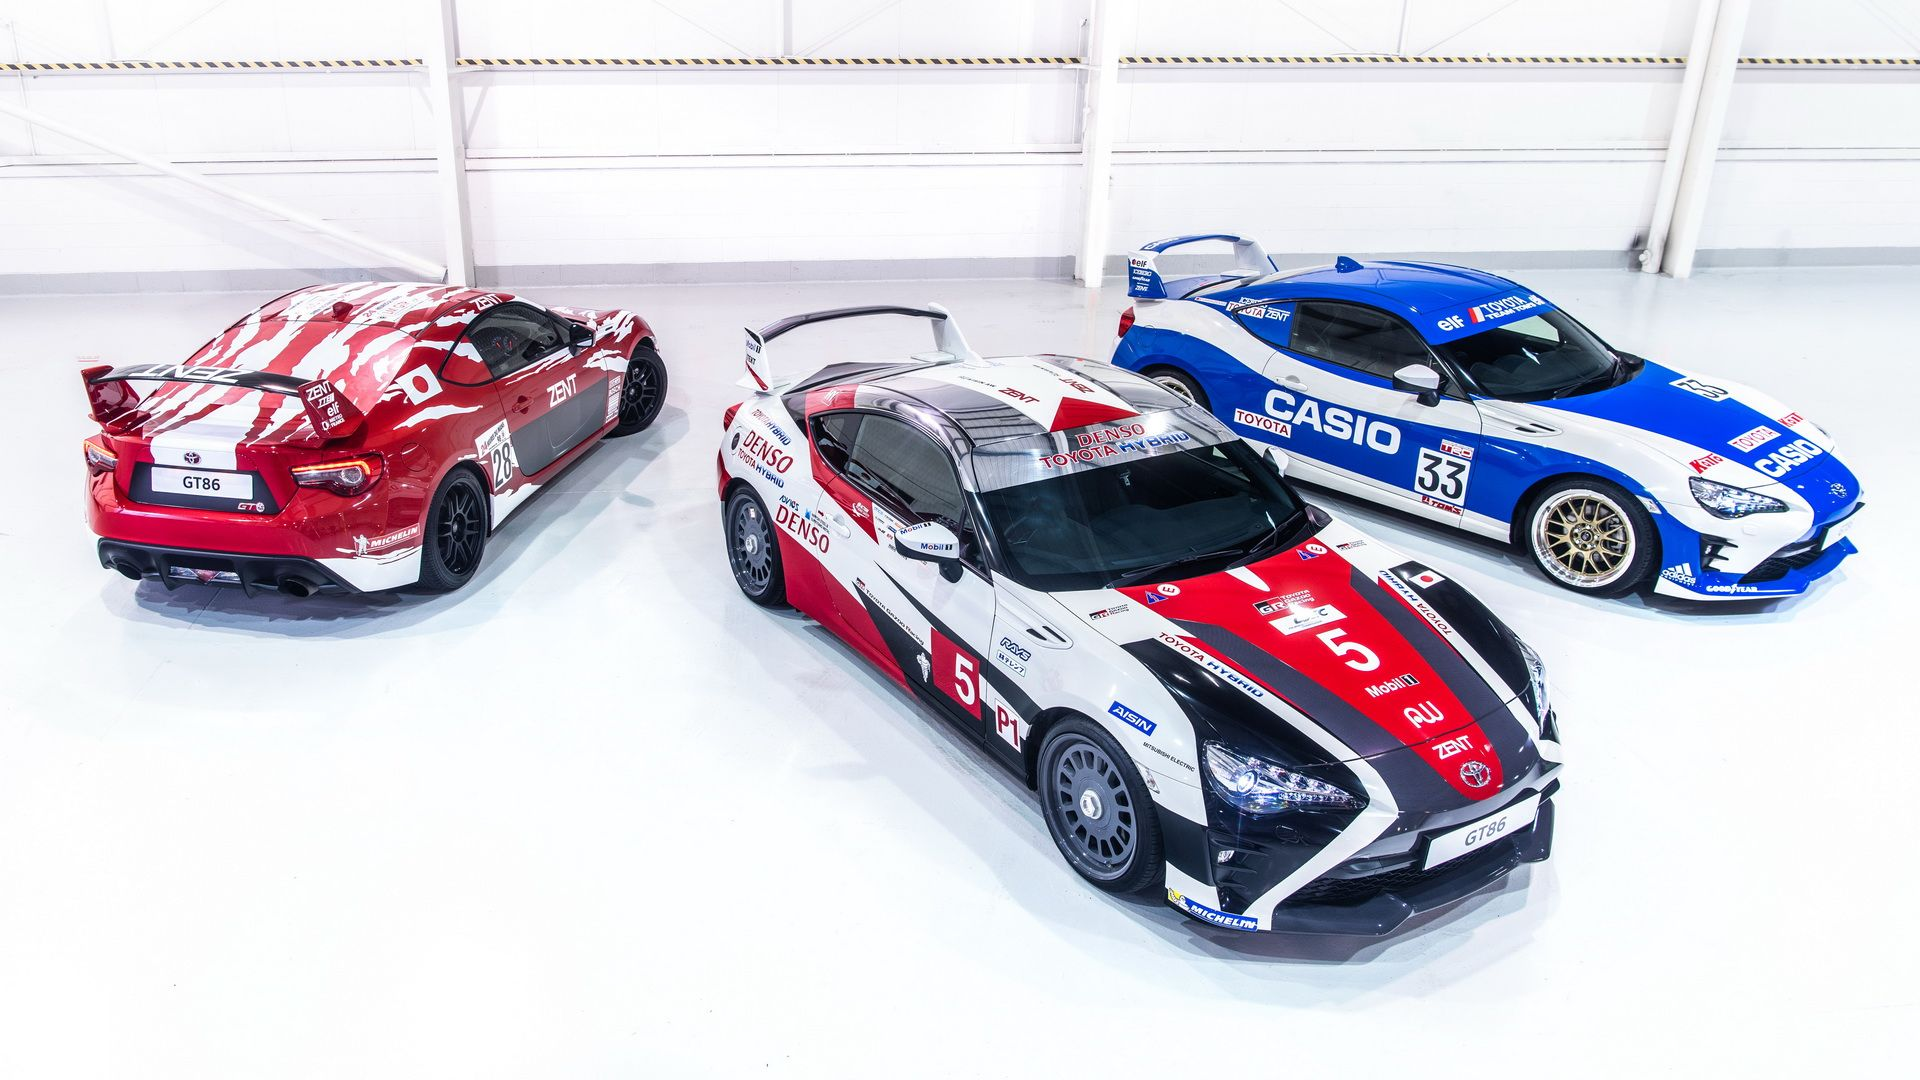 toyota-gt86-heritage-livery-24-hours-of-le-mans-22